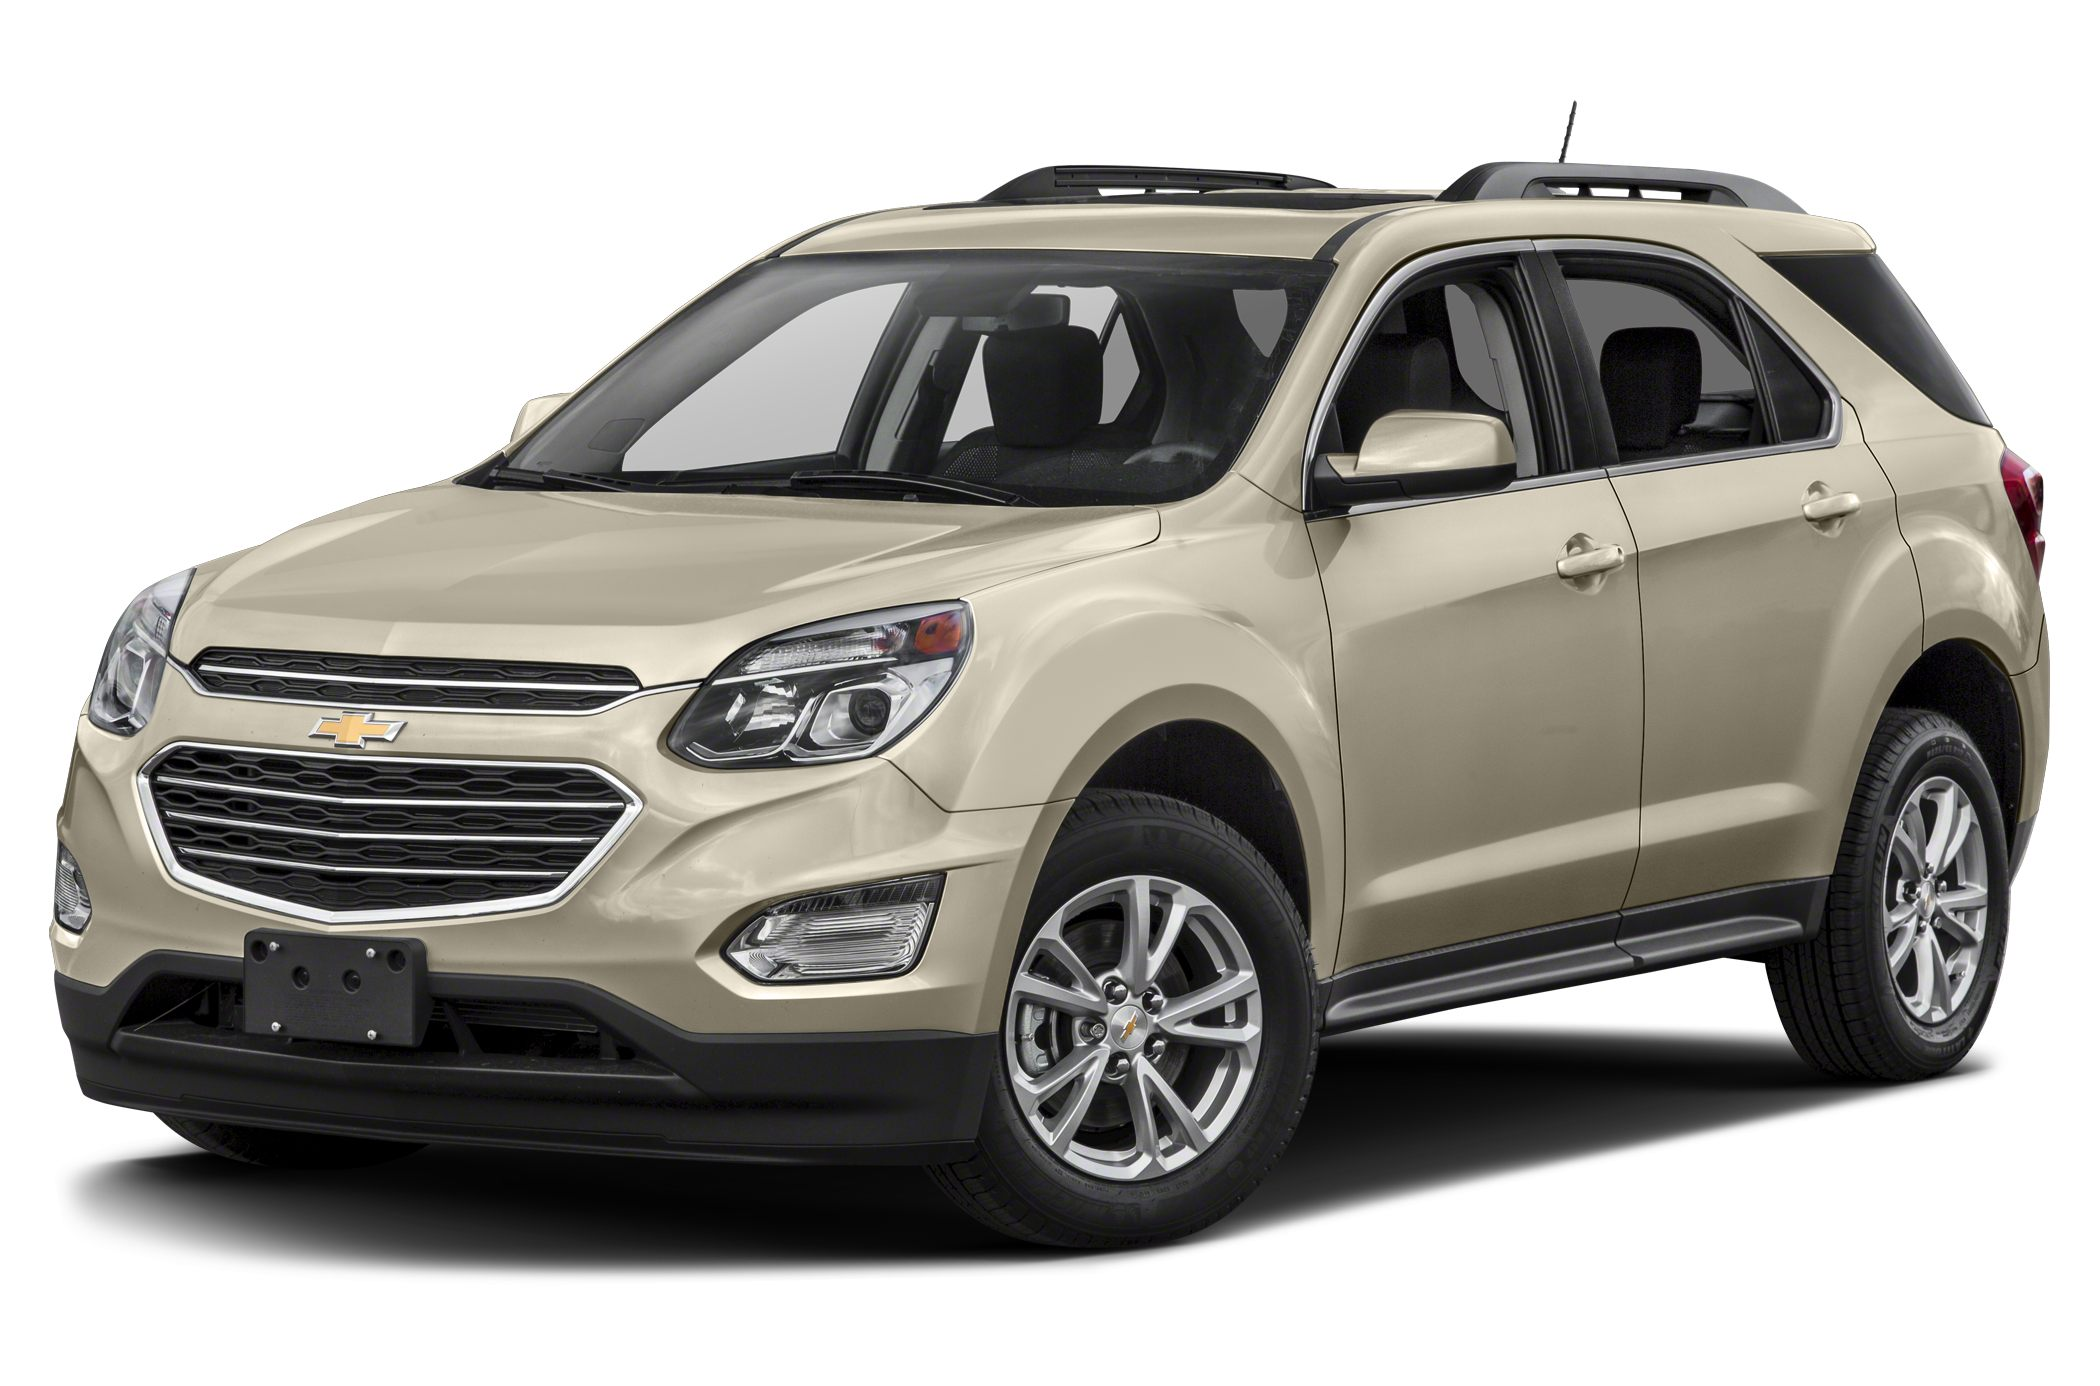 Chevy Dealers In Ri News Of New Car Release